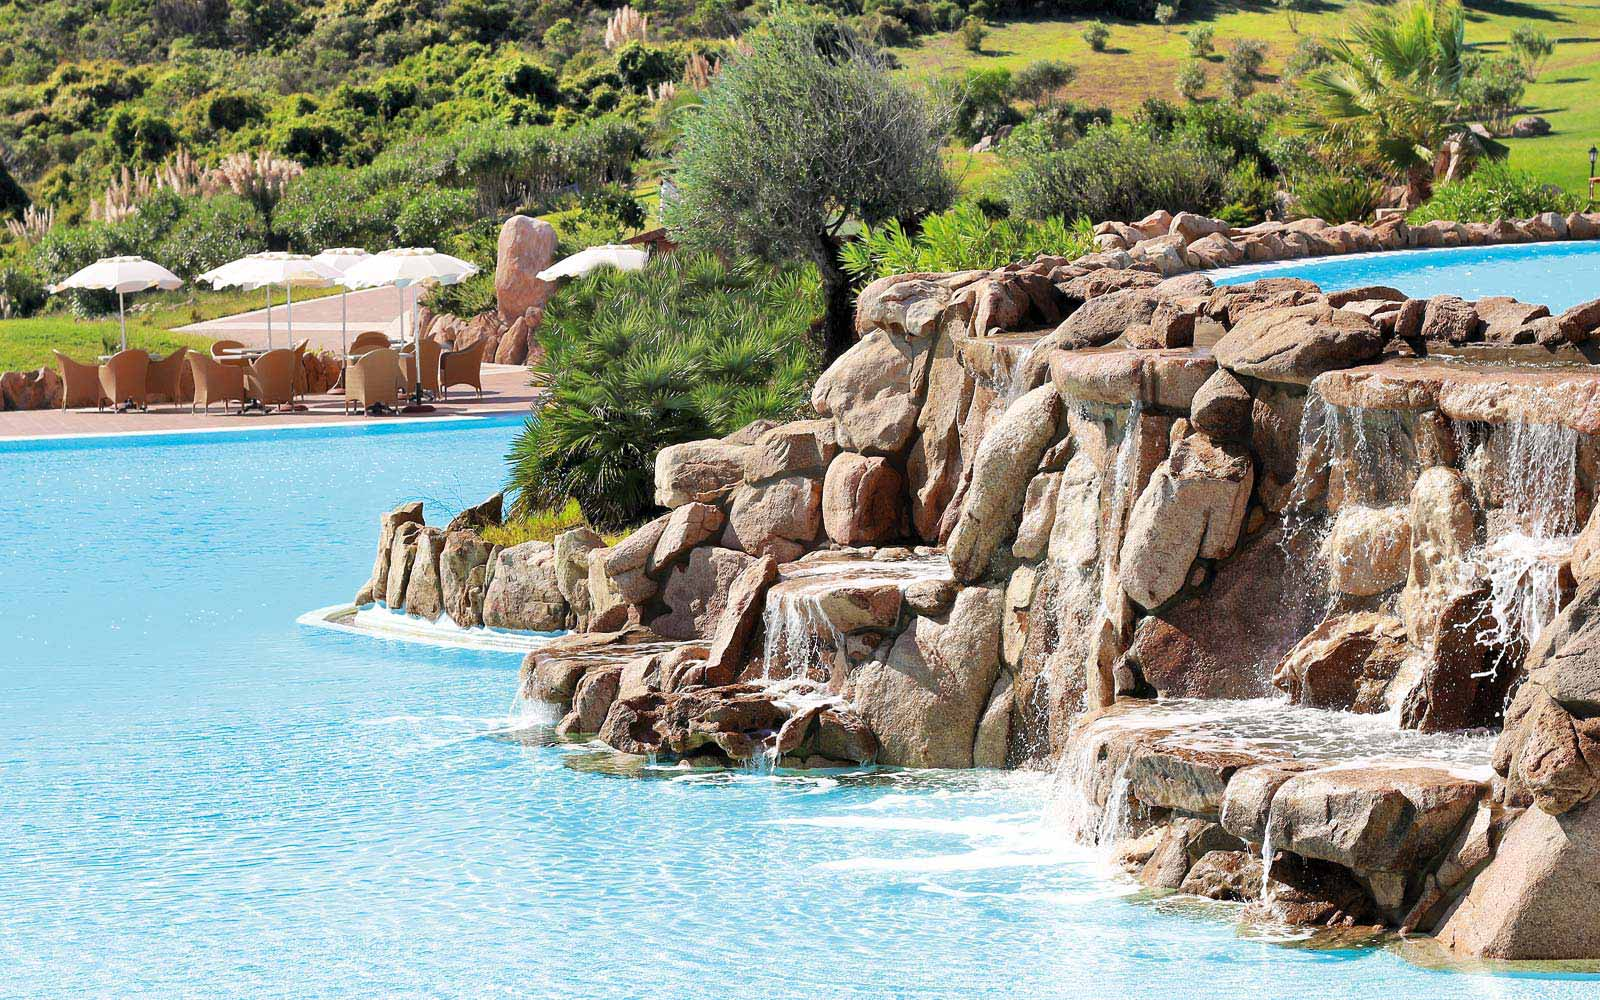 Pool with waterfalls at Colonna Resort